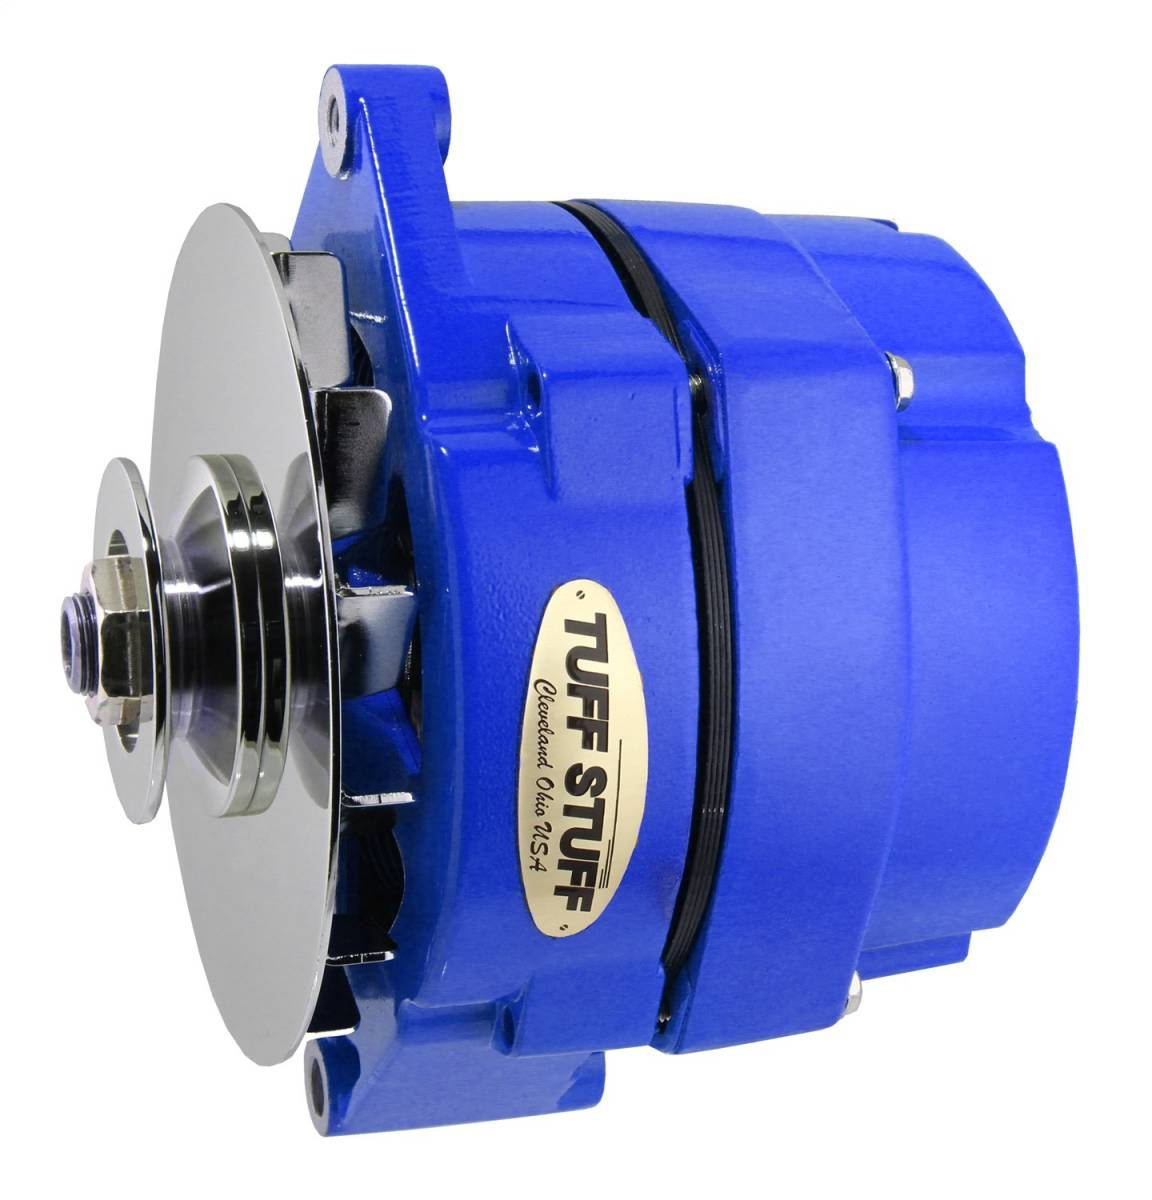 Tuff Stuff Performance - Alternator 100 AMP OEM Or 1 Wire V Groove Pulley Blue Powdercoat w/Chrome Accents 7127NFBLUE